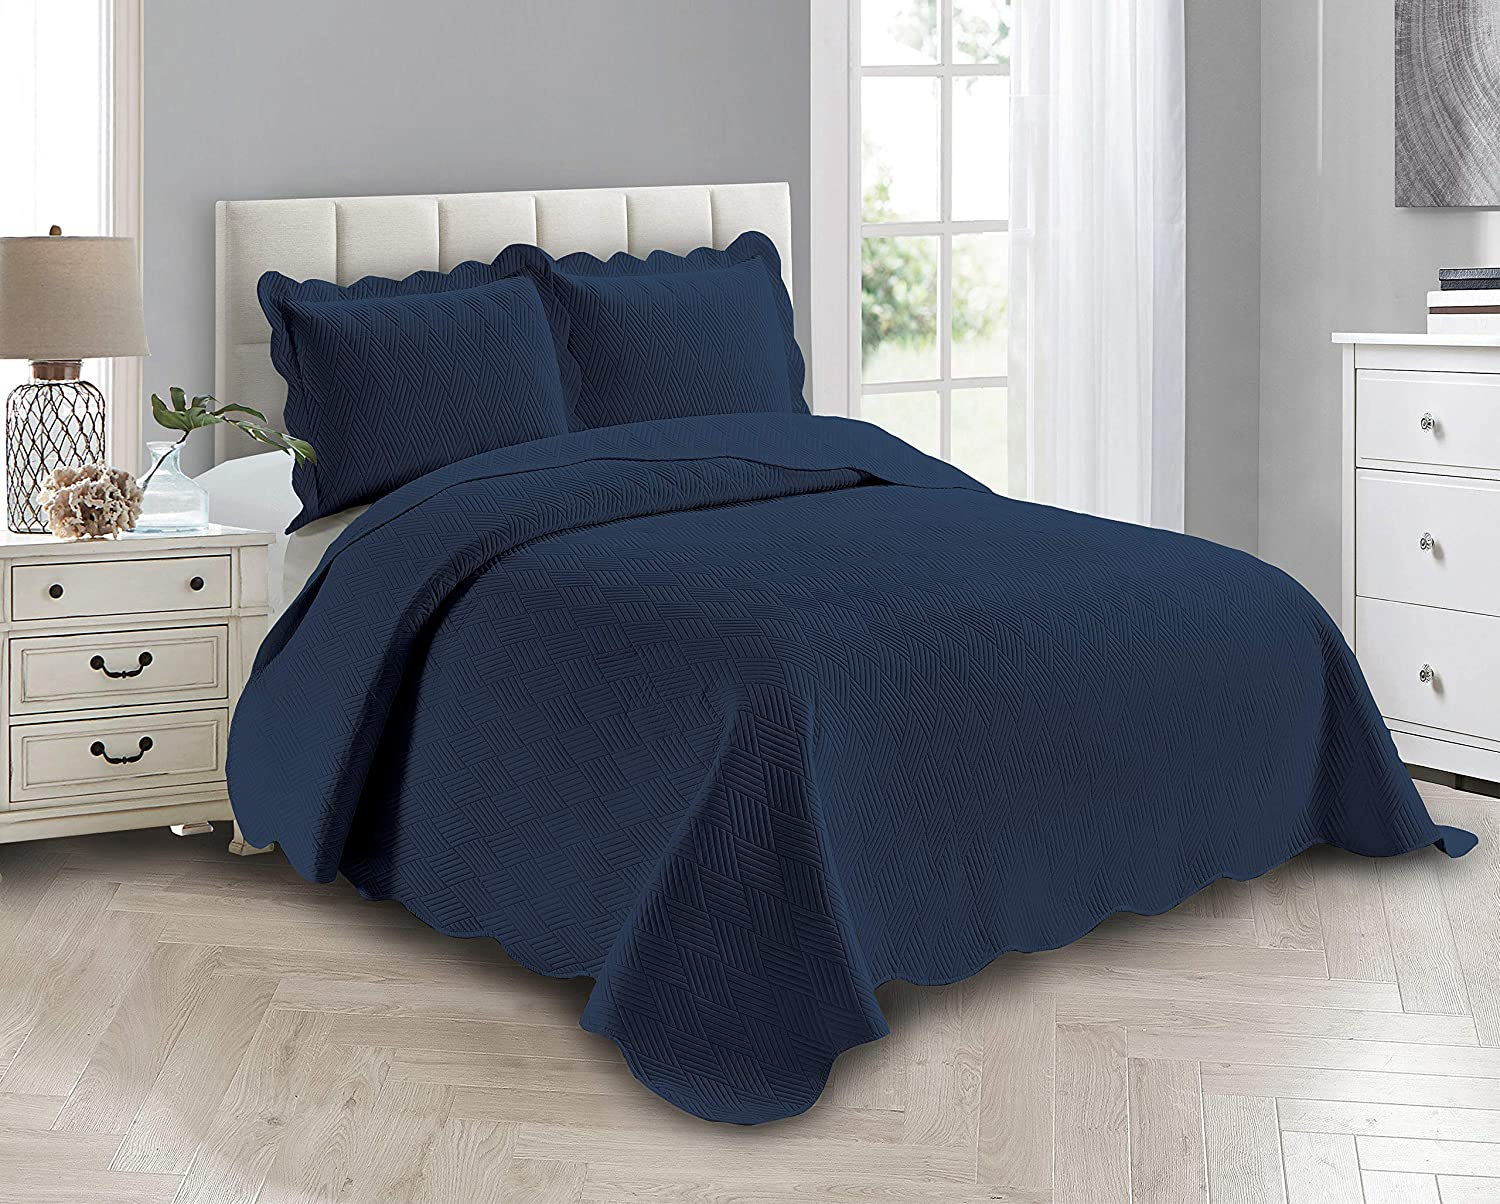 Smart Discount mail order Linen 3 Piece Solid Embossed Bedspread Bedd Quilt Ranking TOP3 Coverlet